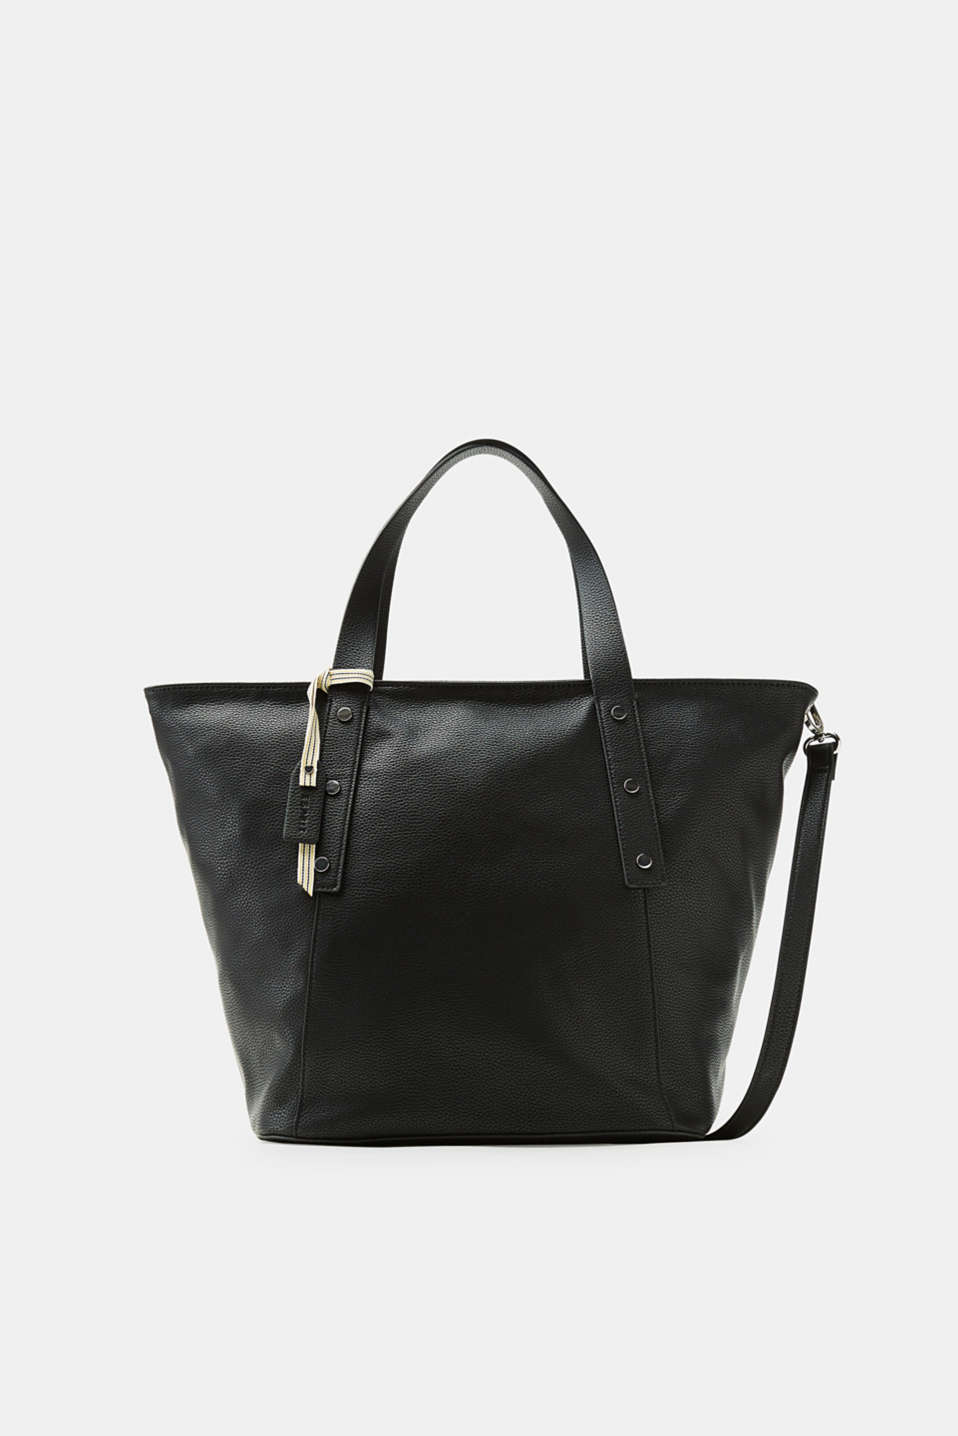 Perfect for your everyday look! The timeless and sleek design makes this tote bag a loyal companion.